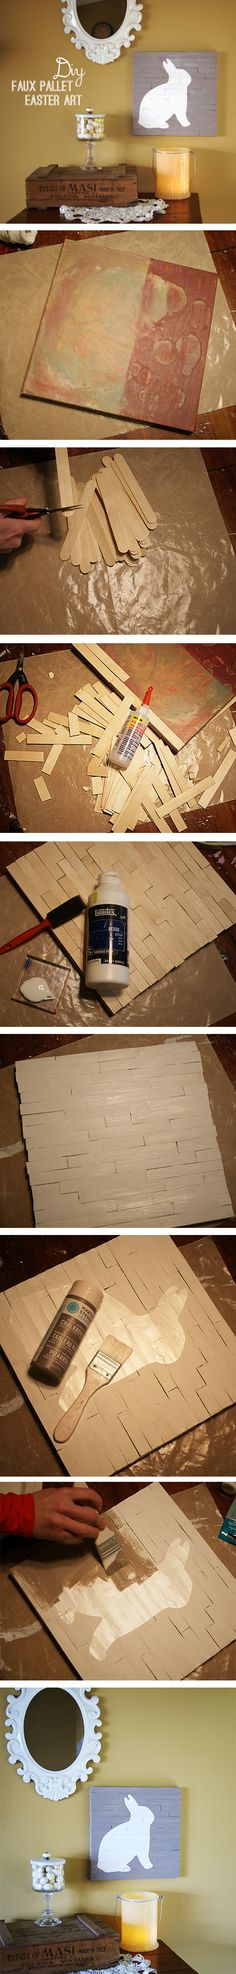 Make Faux Wood Pallet ...I'm not such a fan of the bunny, but maybe I could put something with my initial in it?